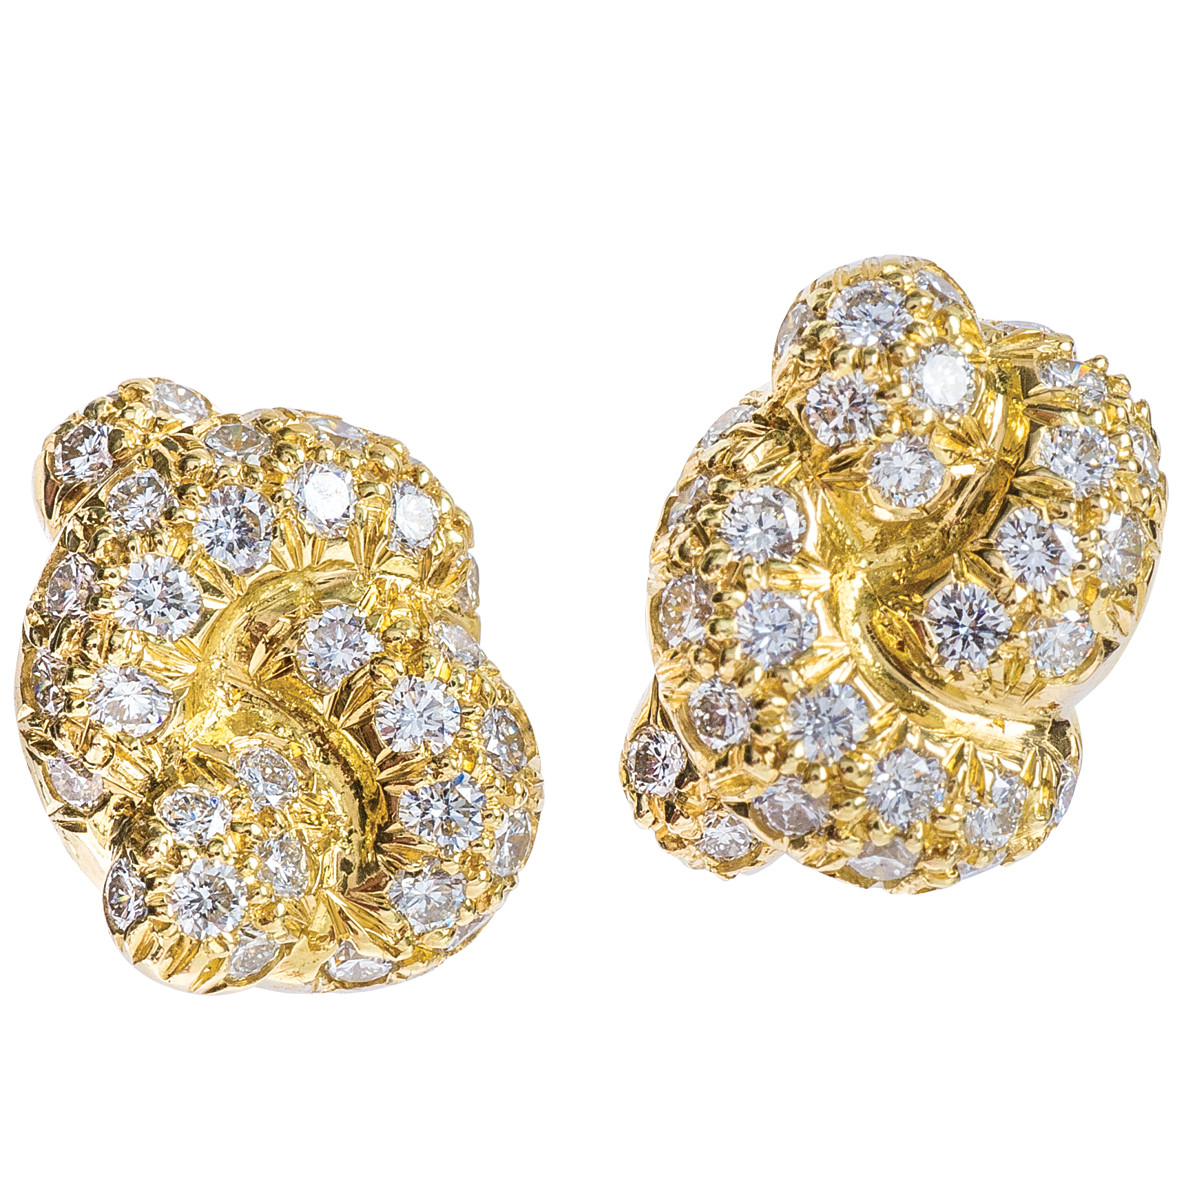 Vintage Angela Cummings Love Knot Diamond Earrings